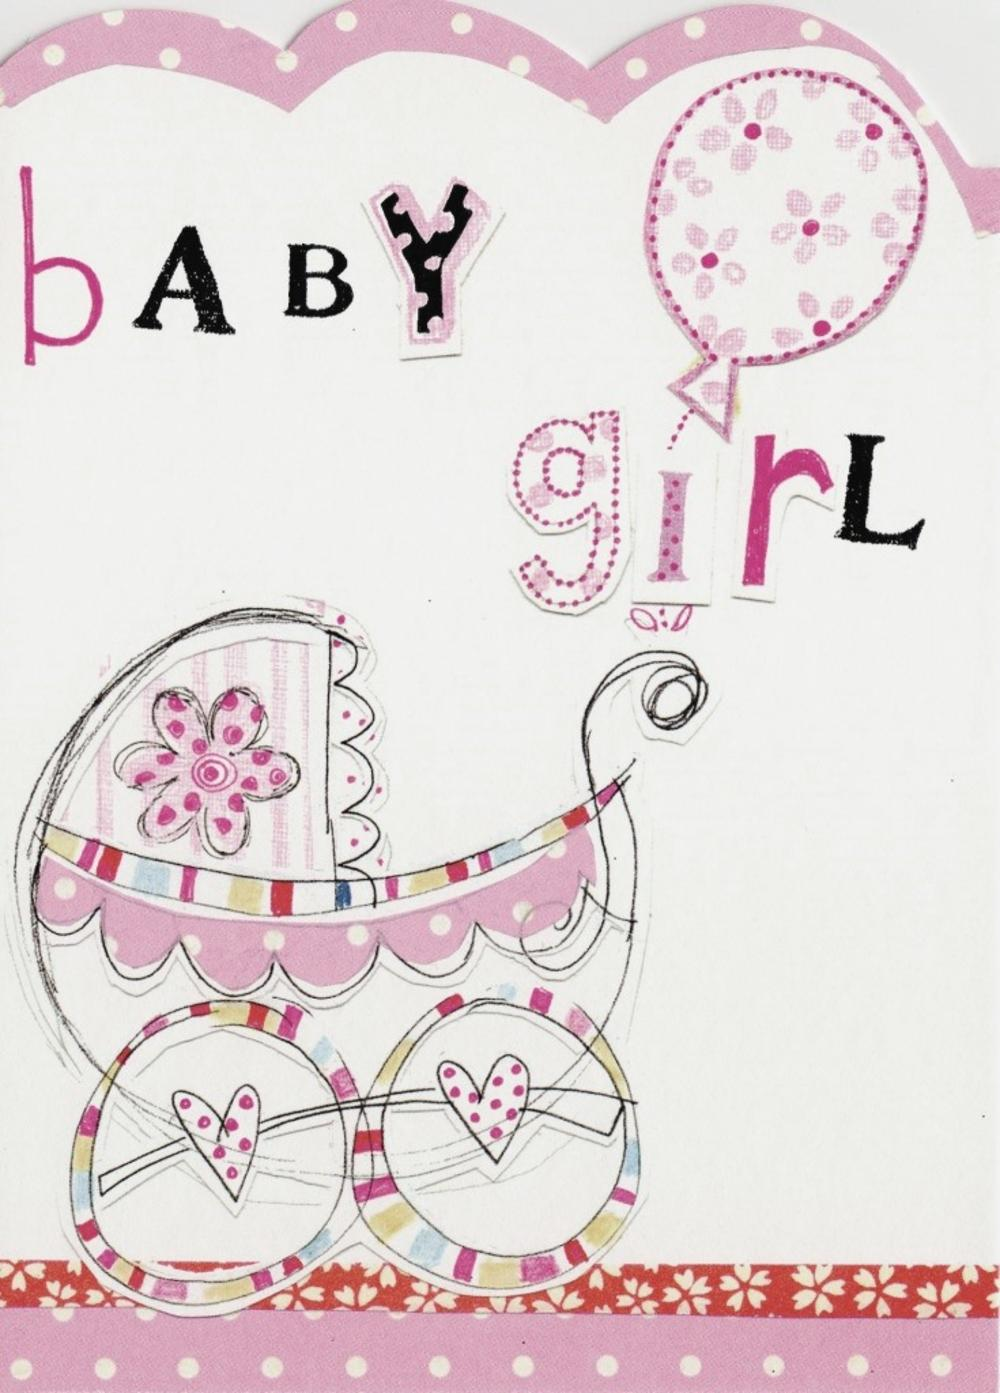 New baby girl paper salad greeting card cards love kates new baby girl paper salad greeting card kristyandbryce Images